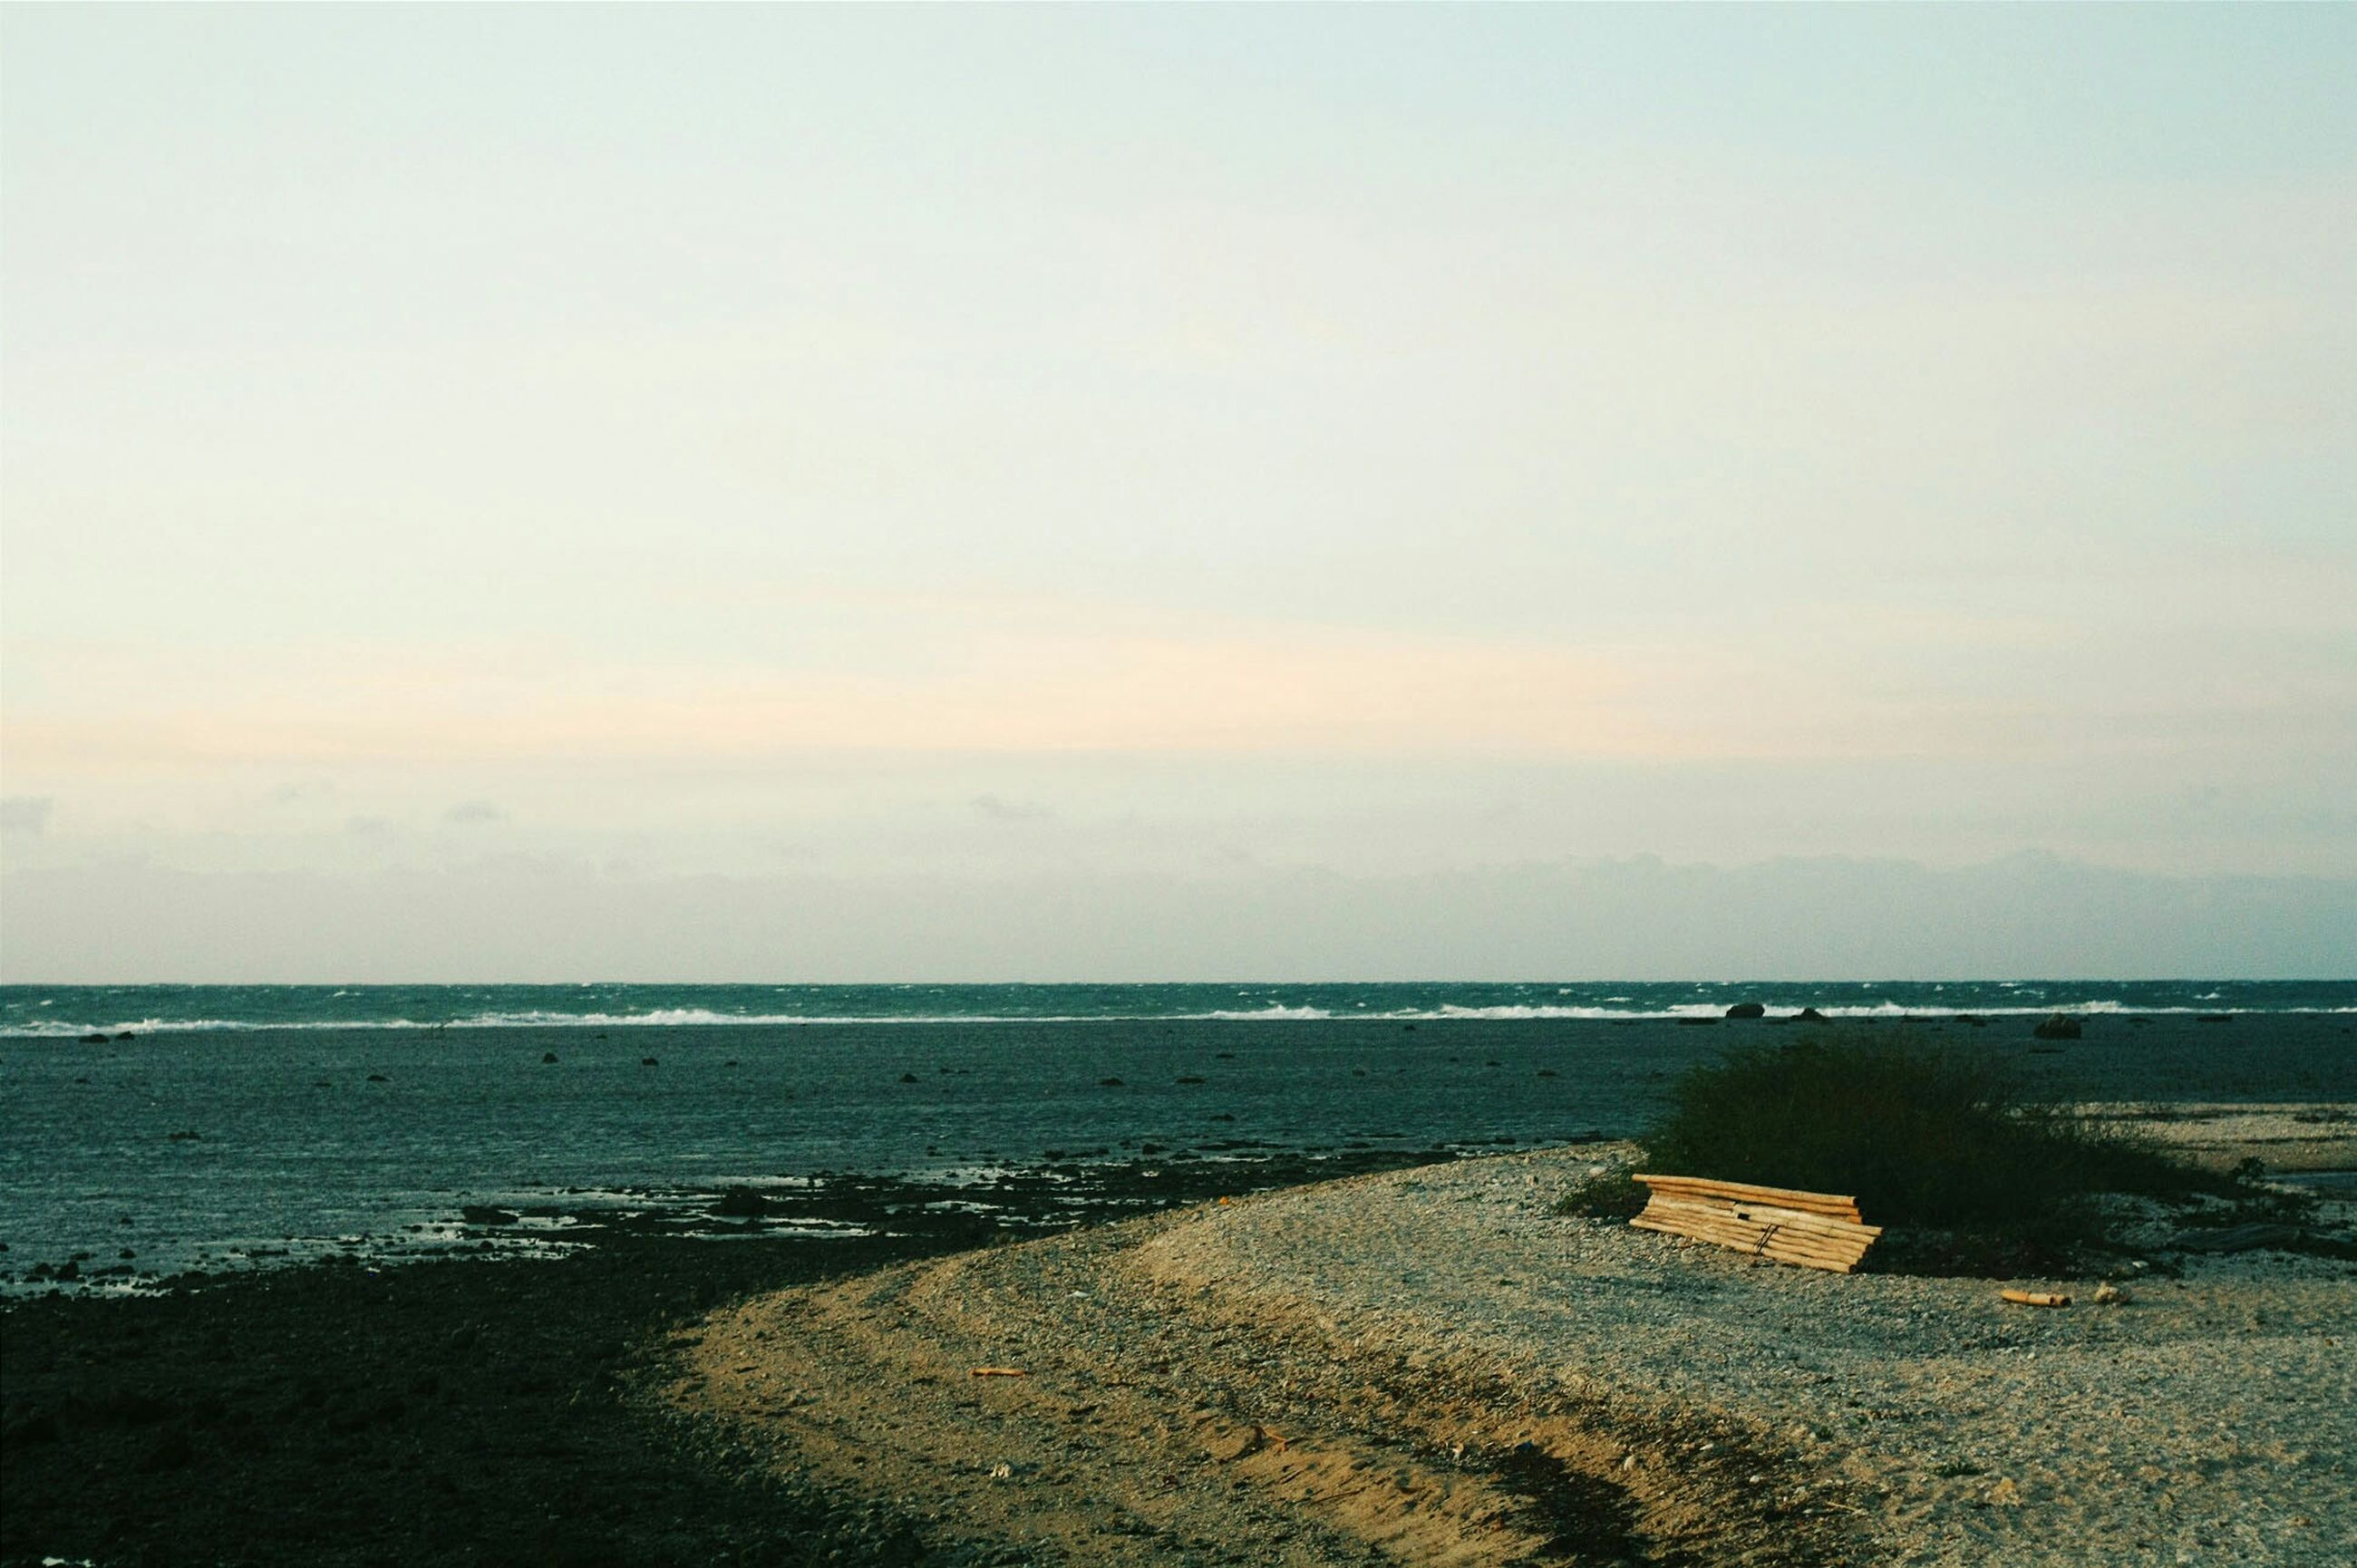 sea, water, horizon over water, tranquil scene, tranquility, scenics, beauty in nature, beach, sky, shore, nature, idyllic, copy space, coastline, remote, outdoors, non-urban scene, calm, no people, sunset